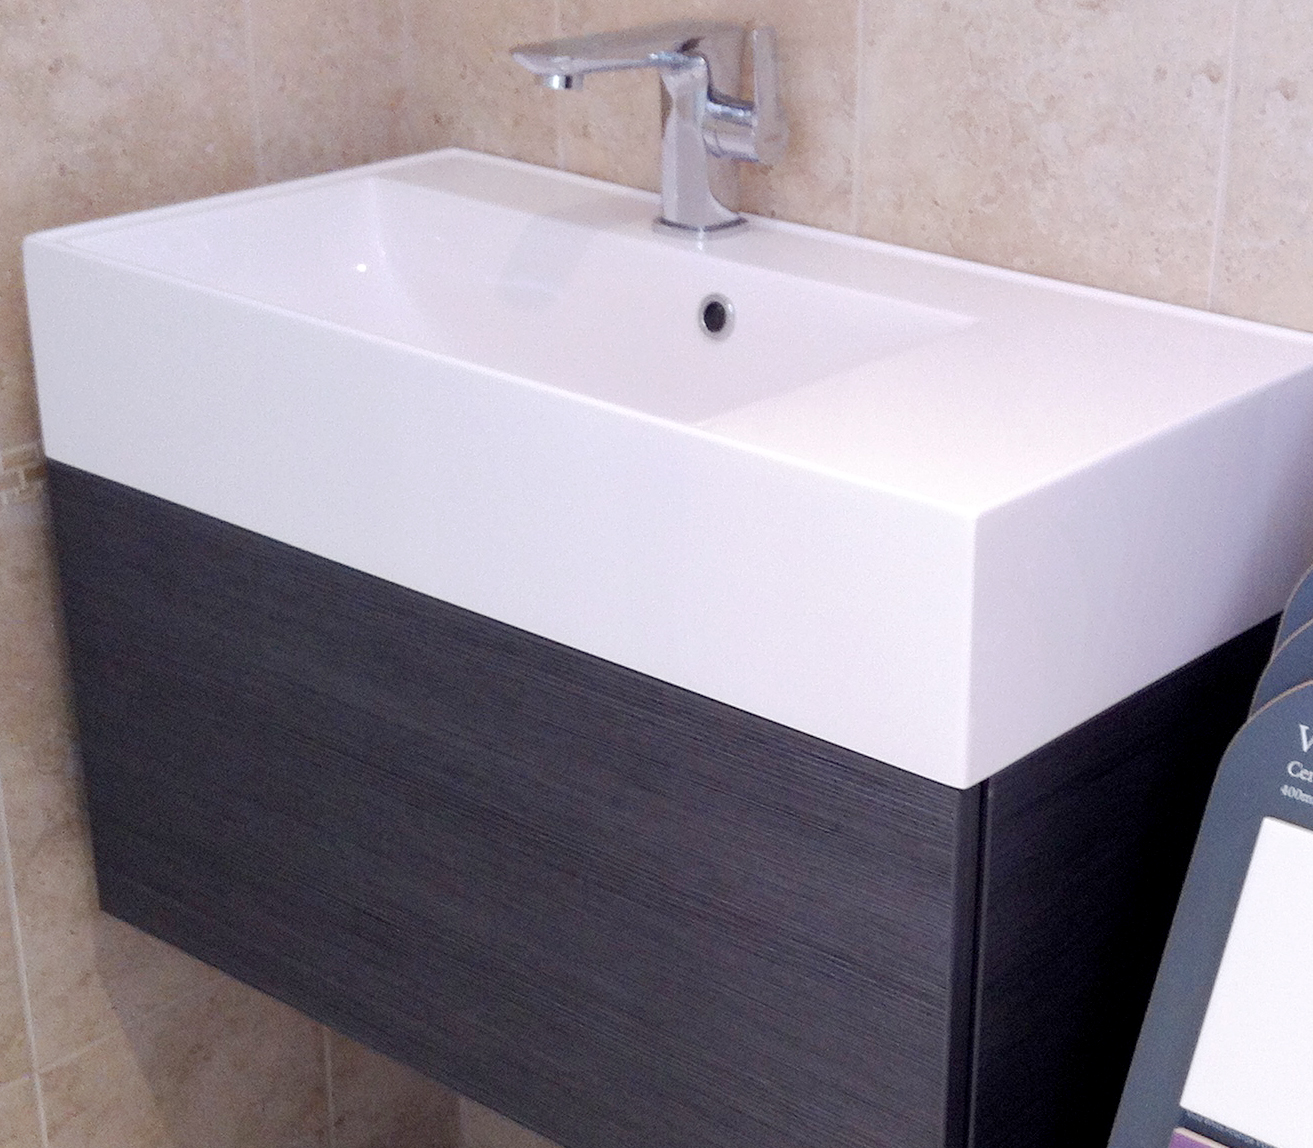 Wc Bauhaus New Bauhaus Elite Basin Unit In Our Showroom Kitchen And